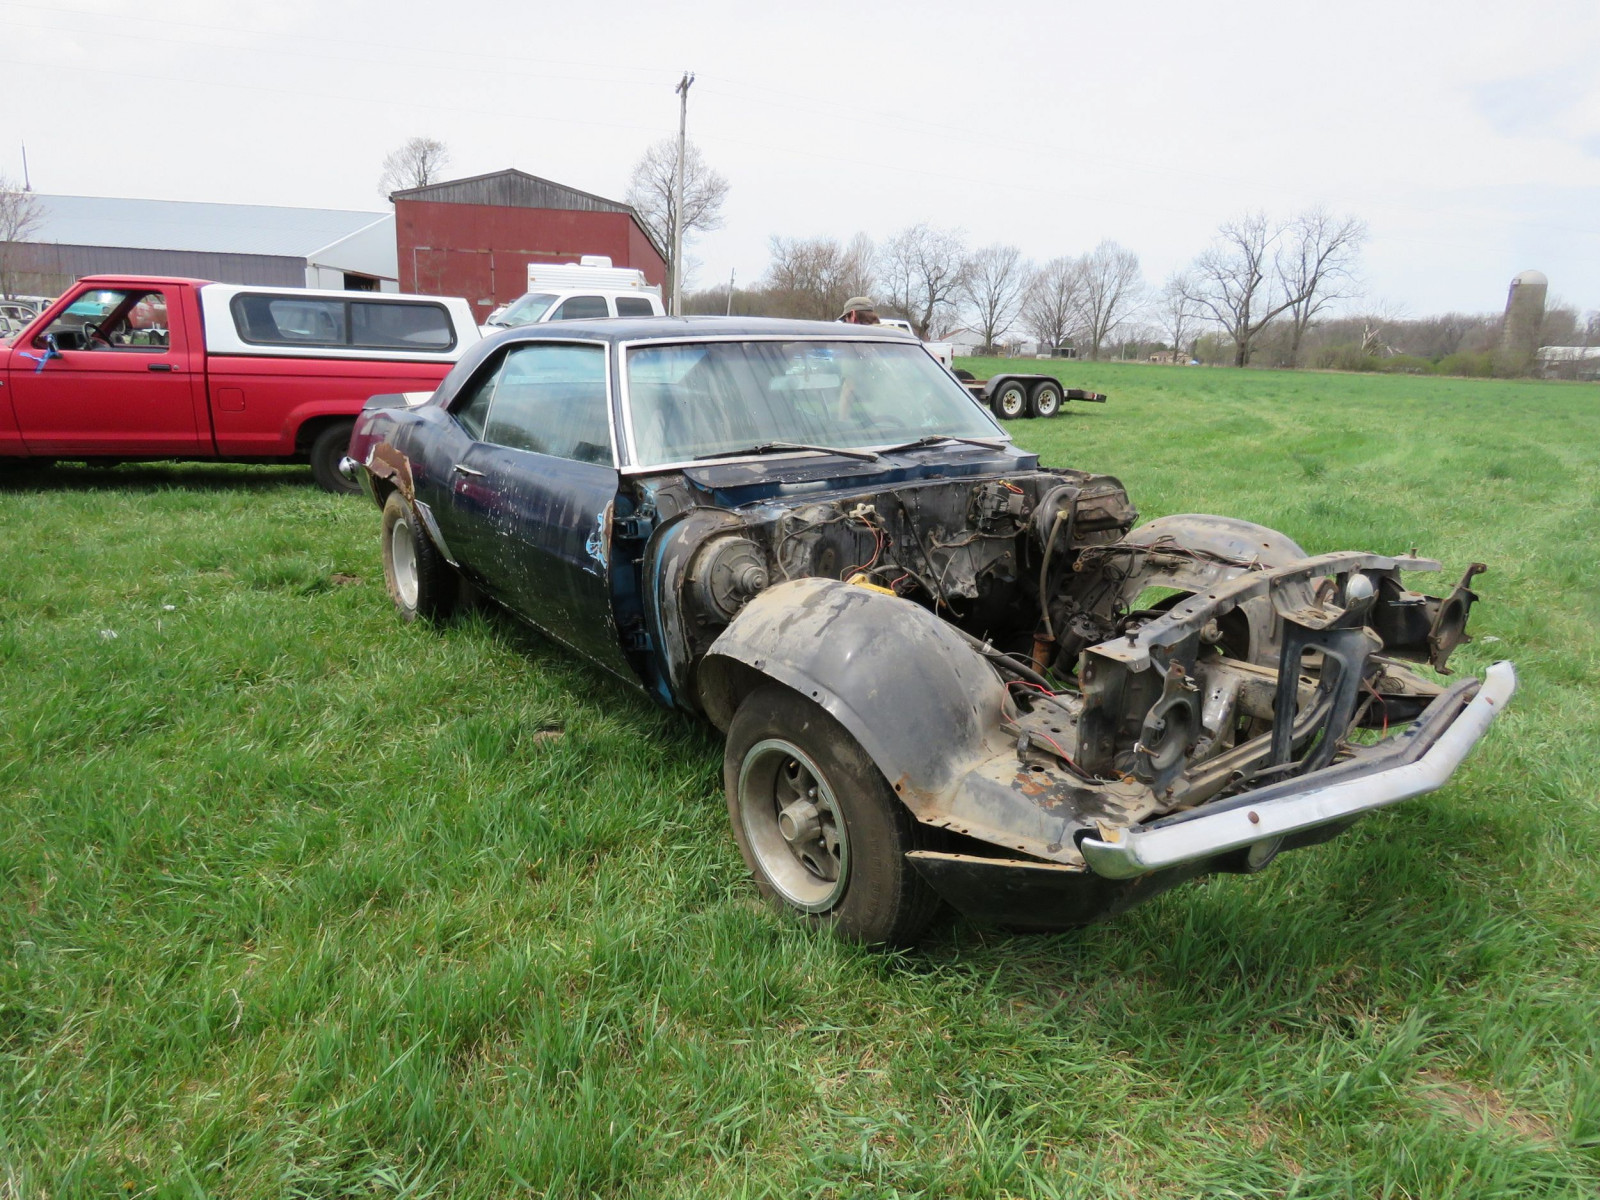 1969 Chevrolet Z28 Camaro For Restore - Image 3